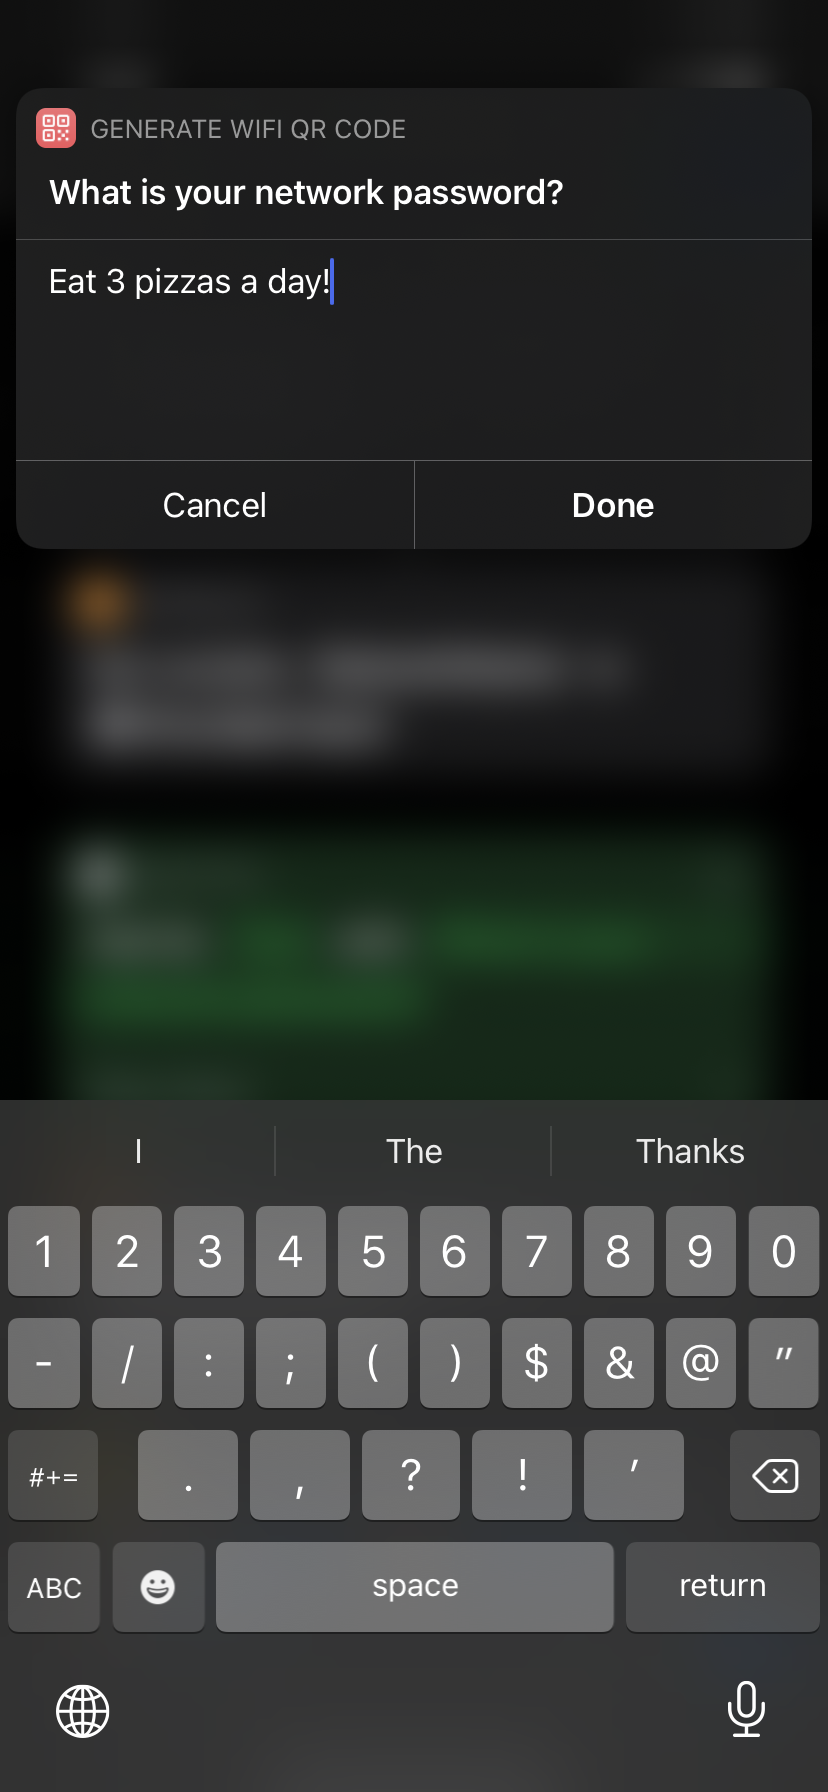 Shortcuts prompt asking for network password